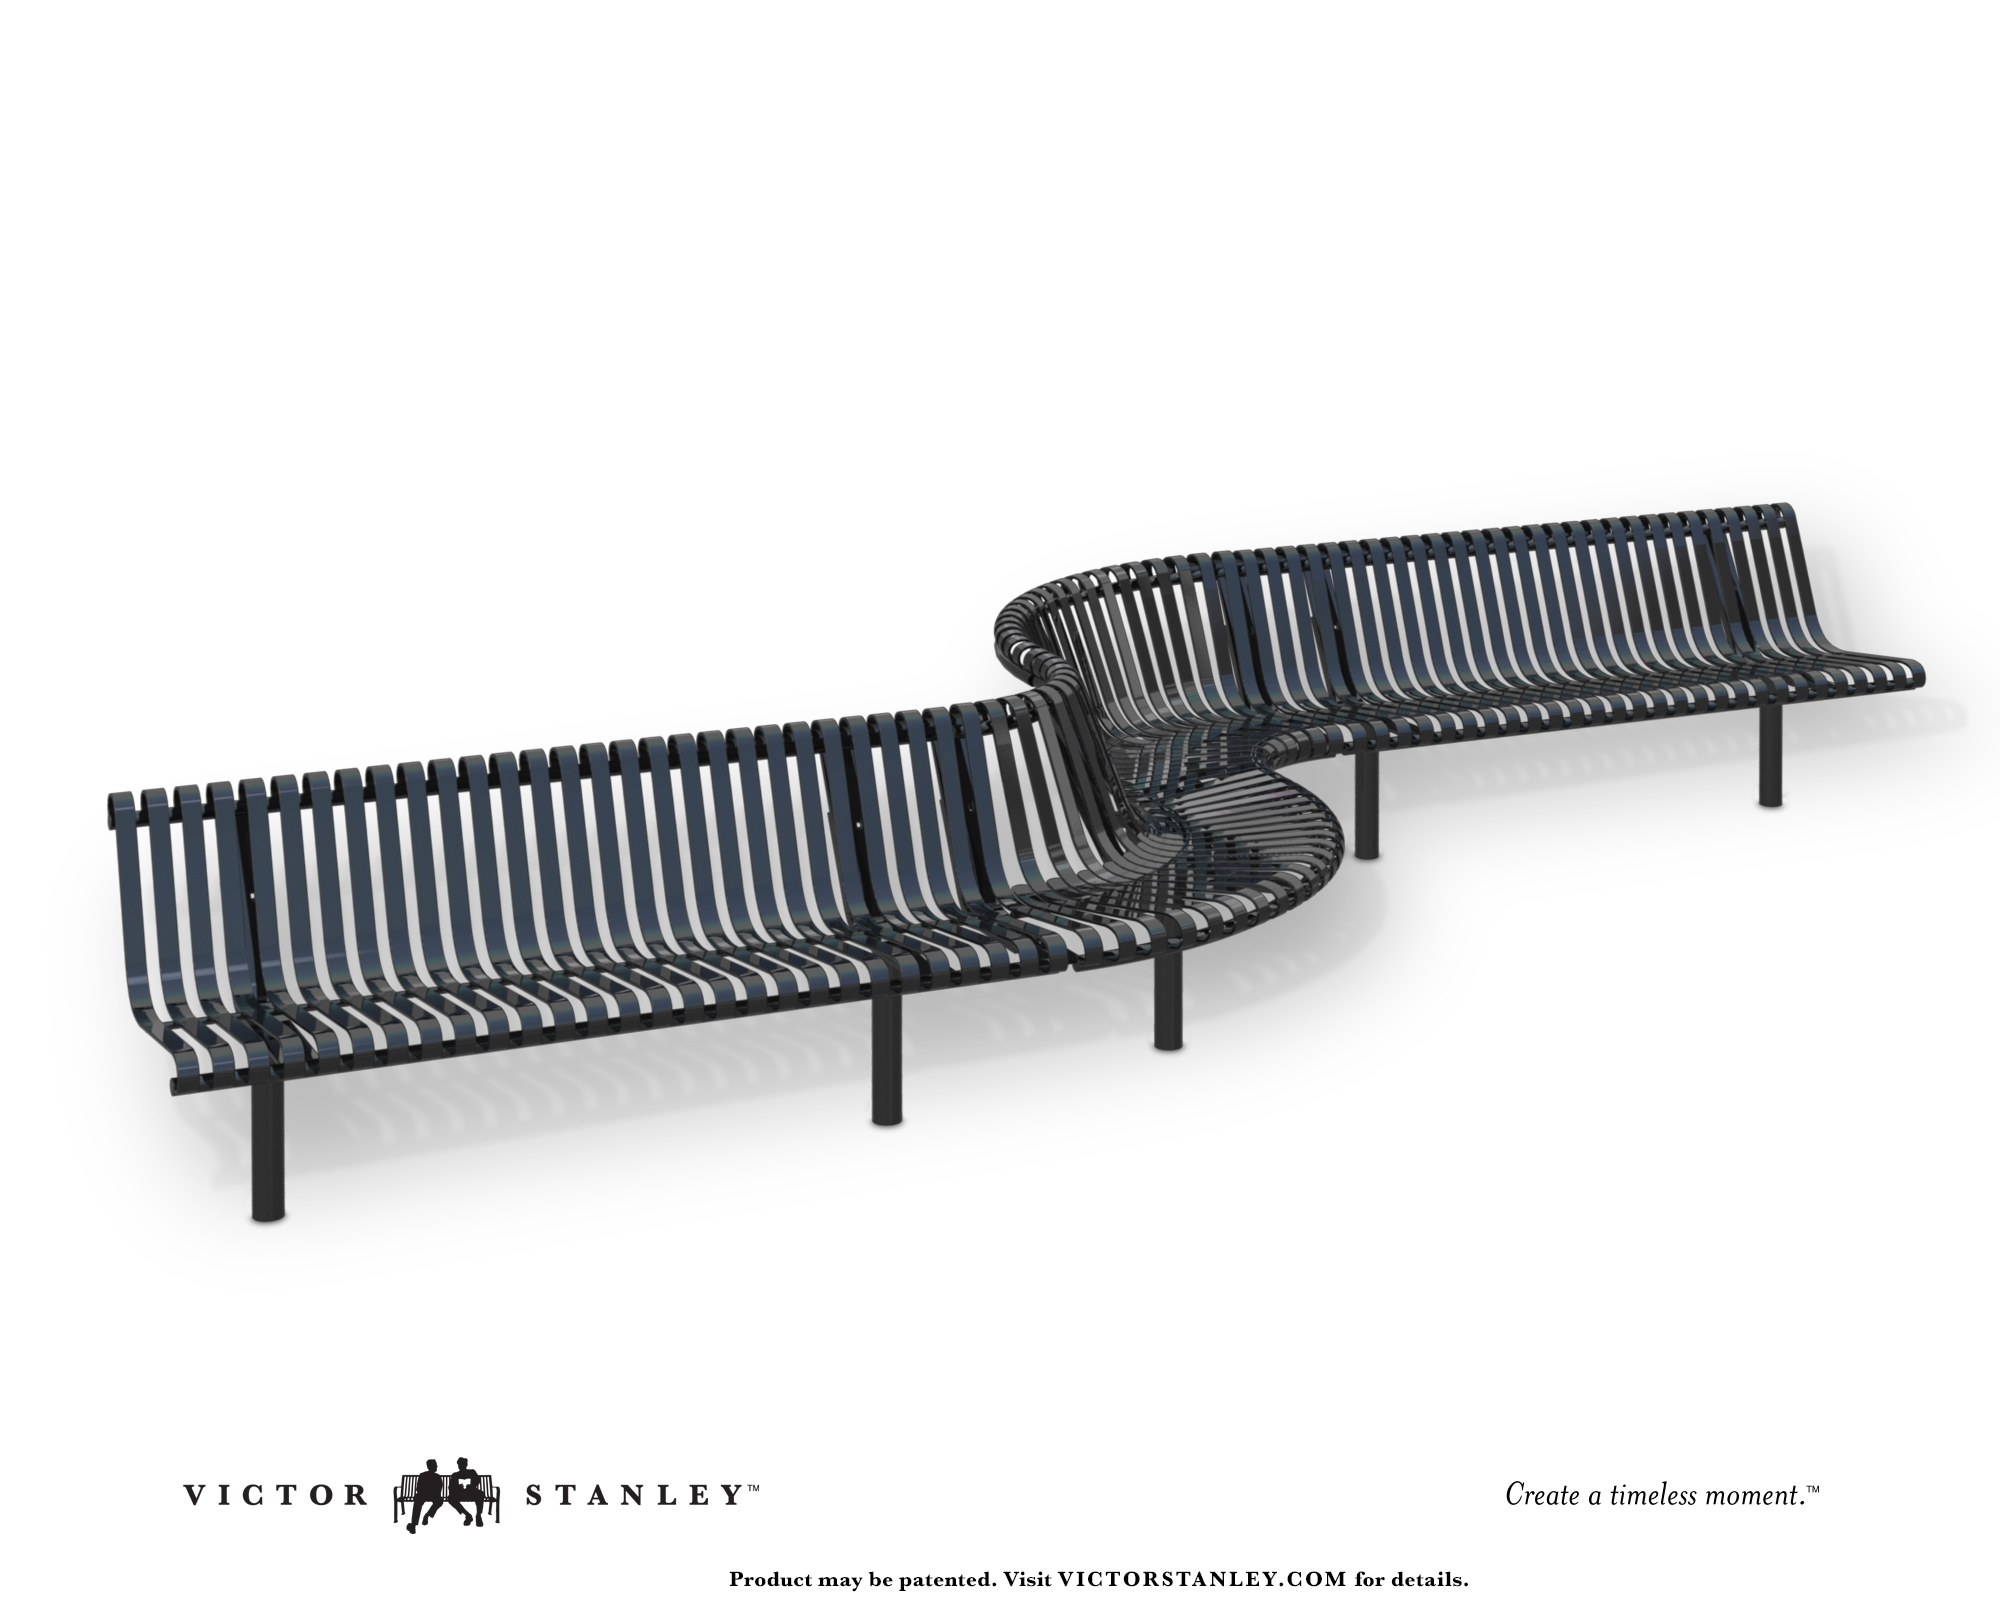 Zigzag Nrb Victor Stanley Site Furniture